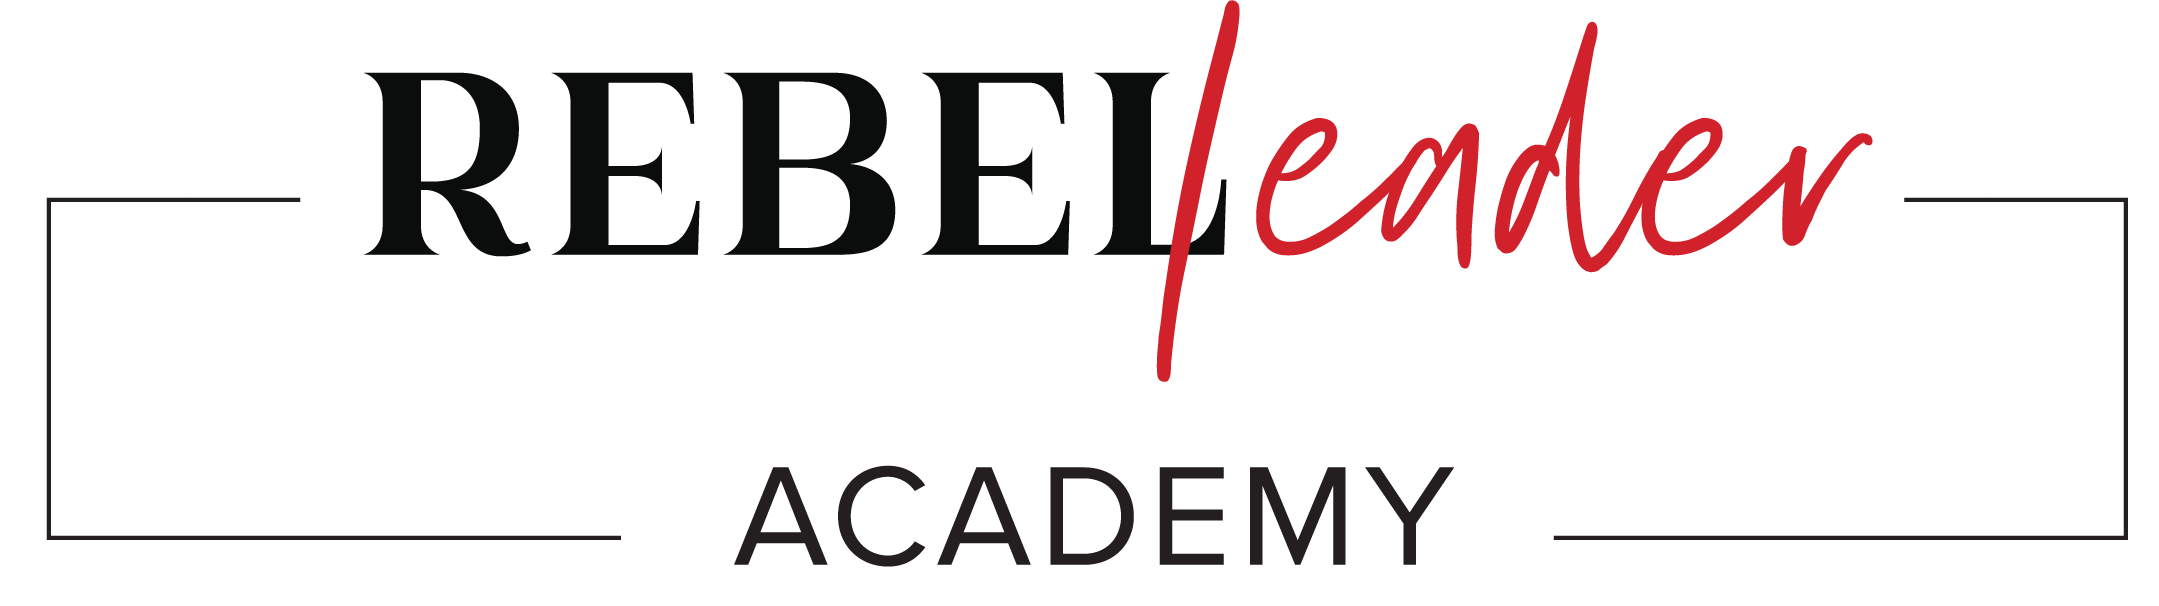 Rebel Leader Academy